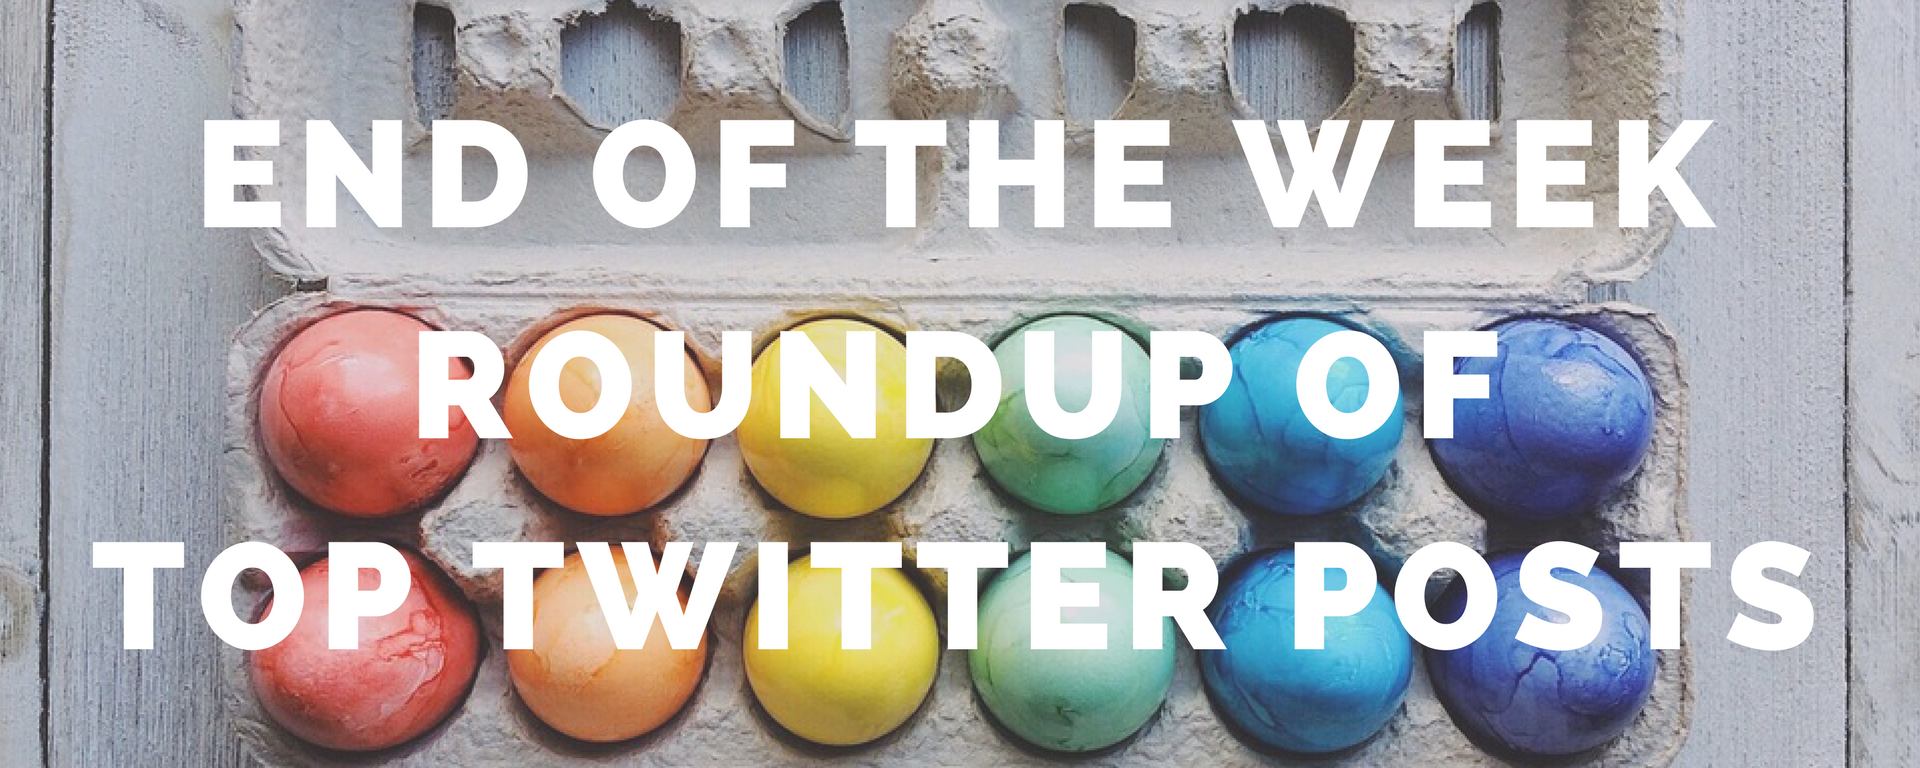 End of the Week Roundup of Top Twitter Posts